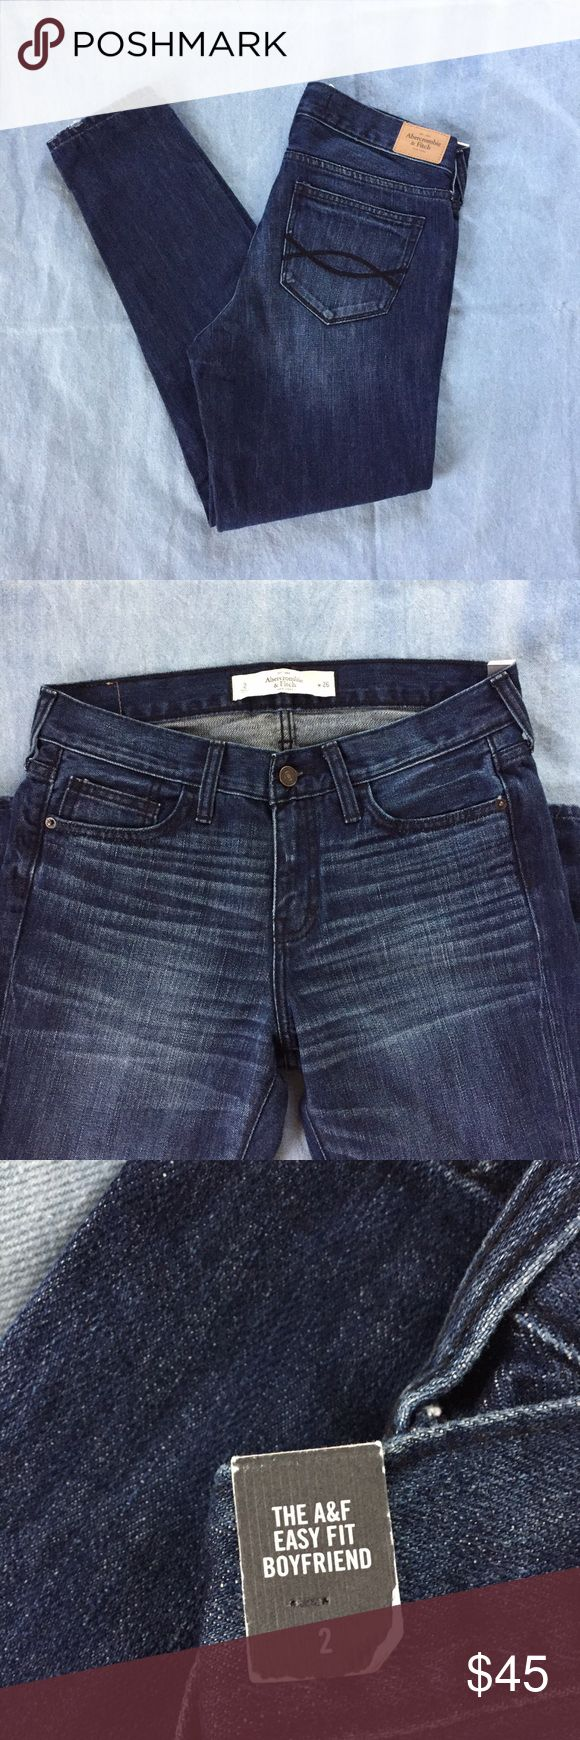 "Abercrombie & Fitch Relaxed Boyfriend Jeans These are brand new and in perfect condition.       Measurements:                                                                30"" Waist 37"" Length 27"" Inseam 6.5"" Rise 5"" Leg Opening Abercrombie & Fitch Jeans Boyfriend"